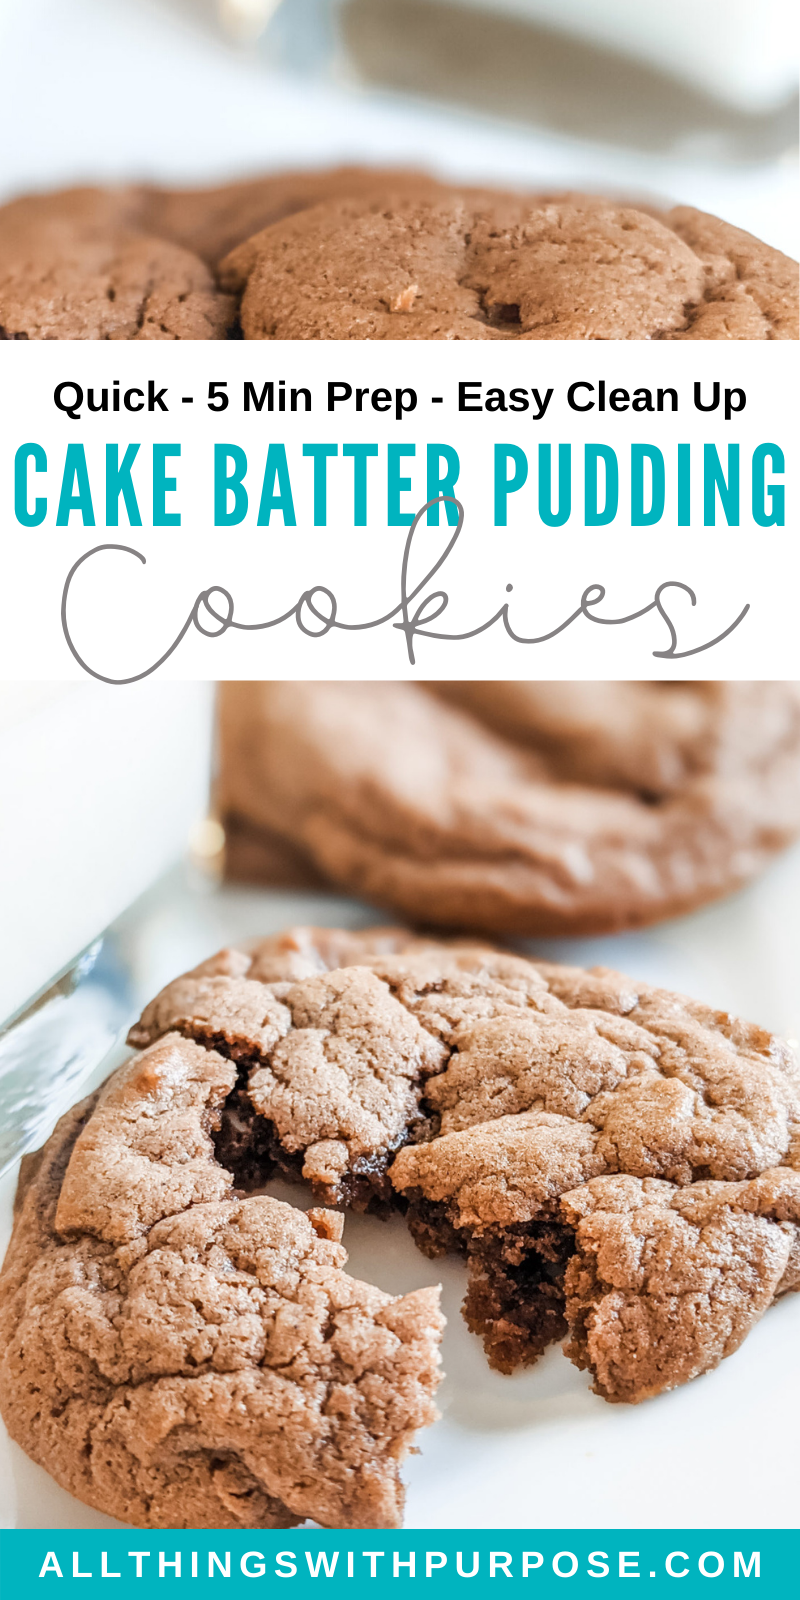 Cake Batter Pudding Cookies All Things with Purpose Sarah Lemp 5